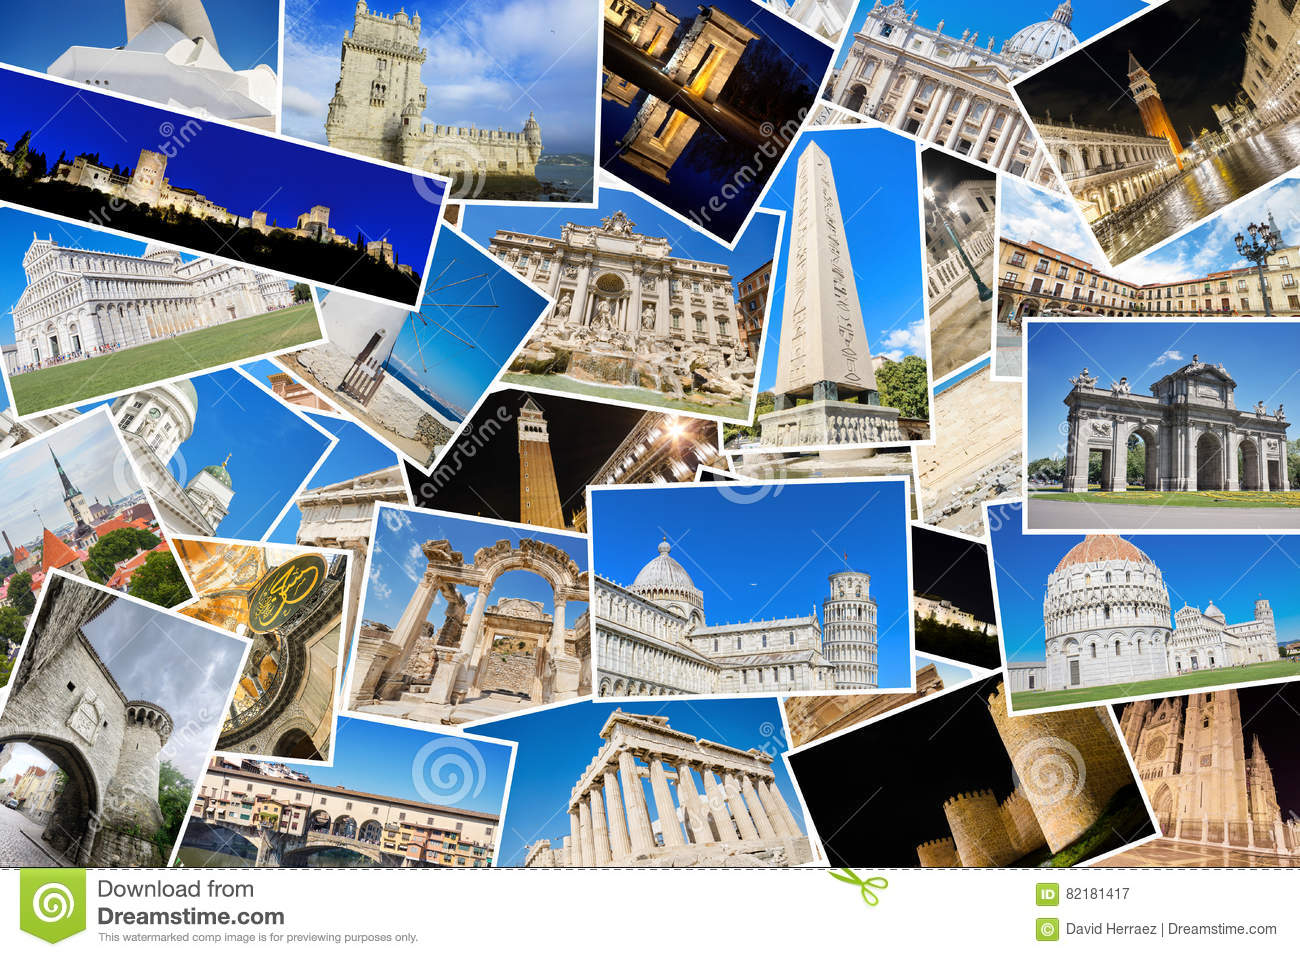 A collage of my best travel photos of famous Landmarks from European cities